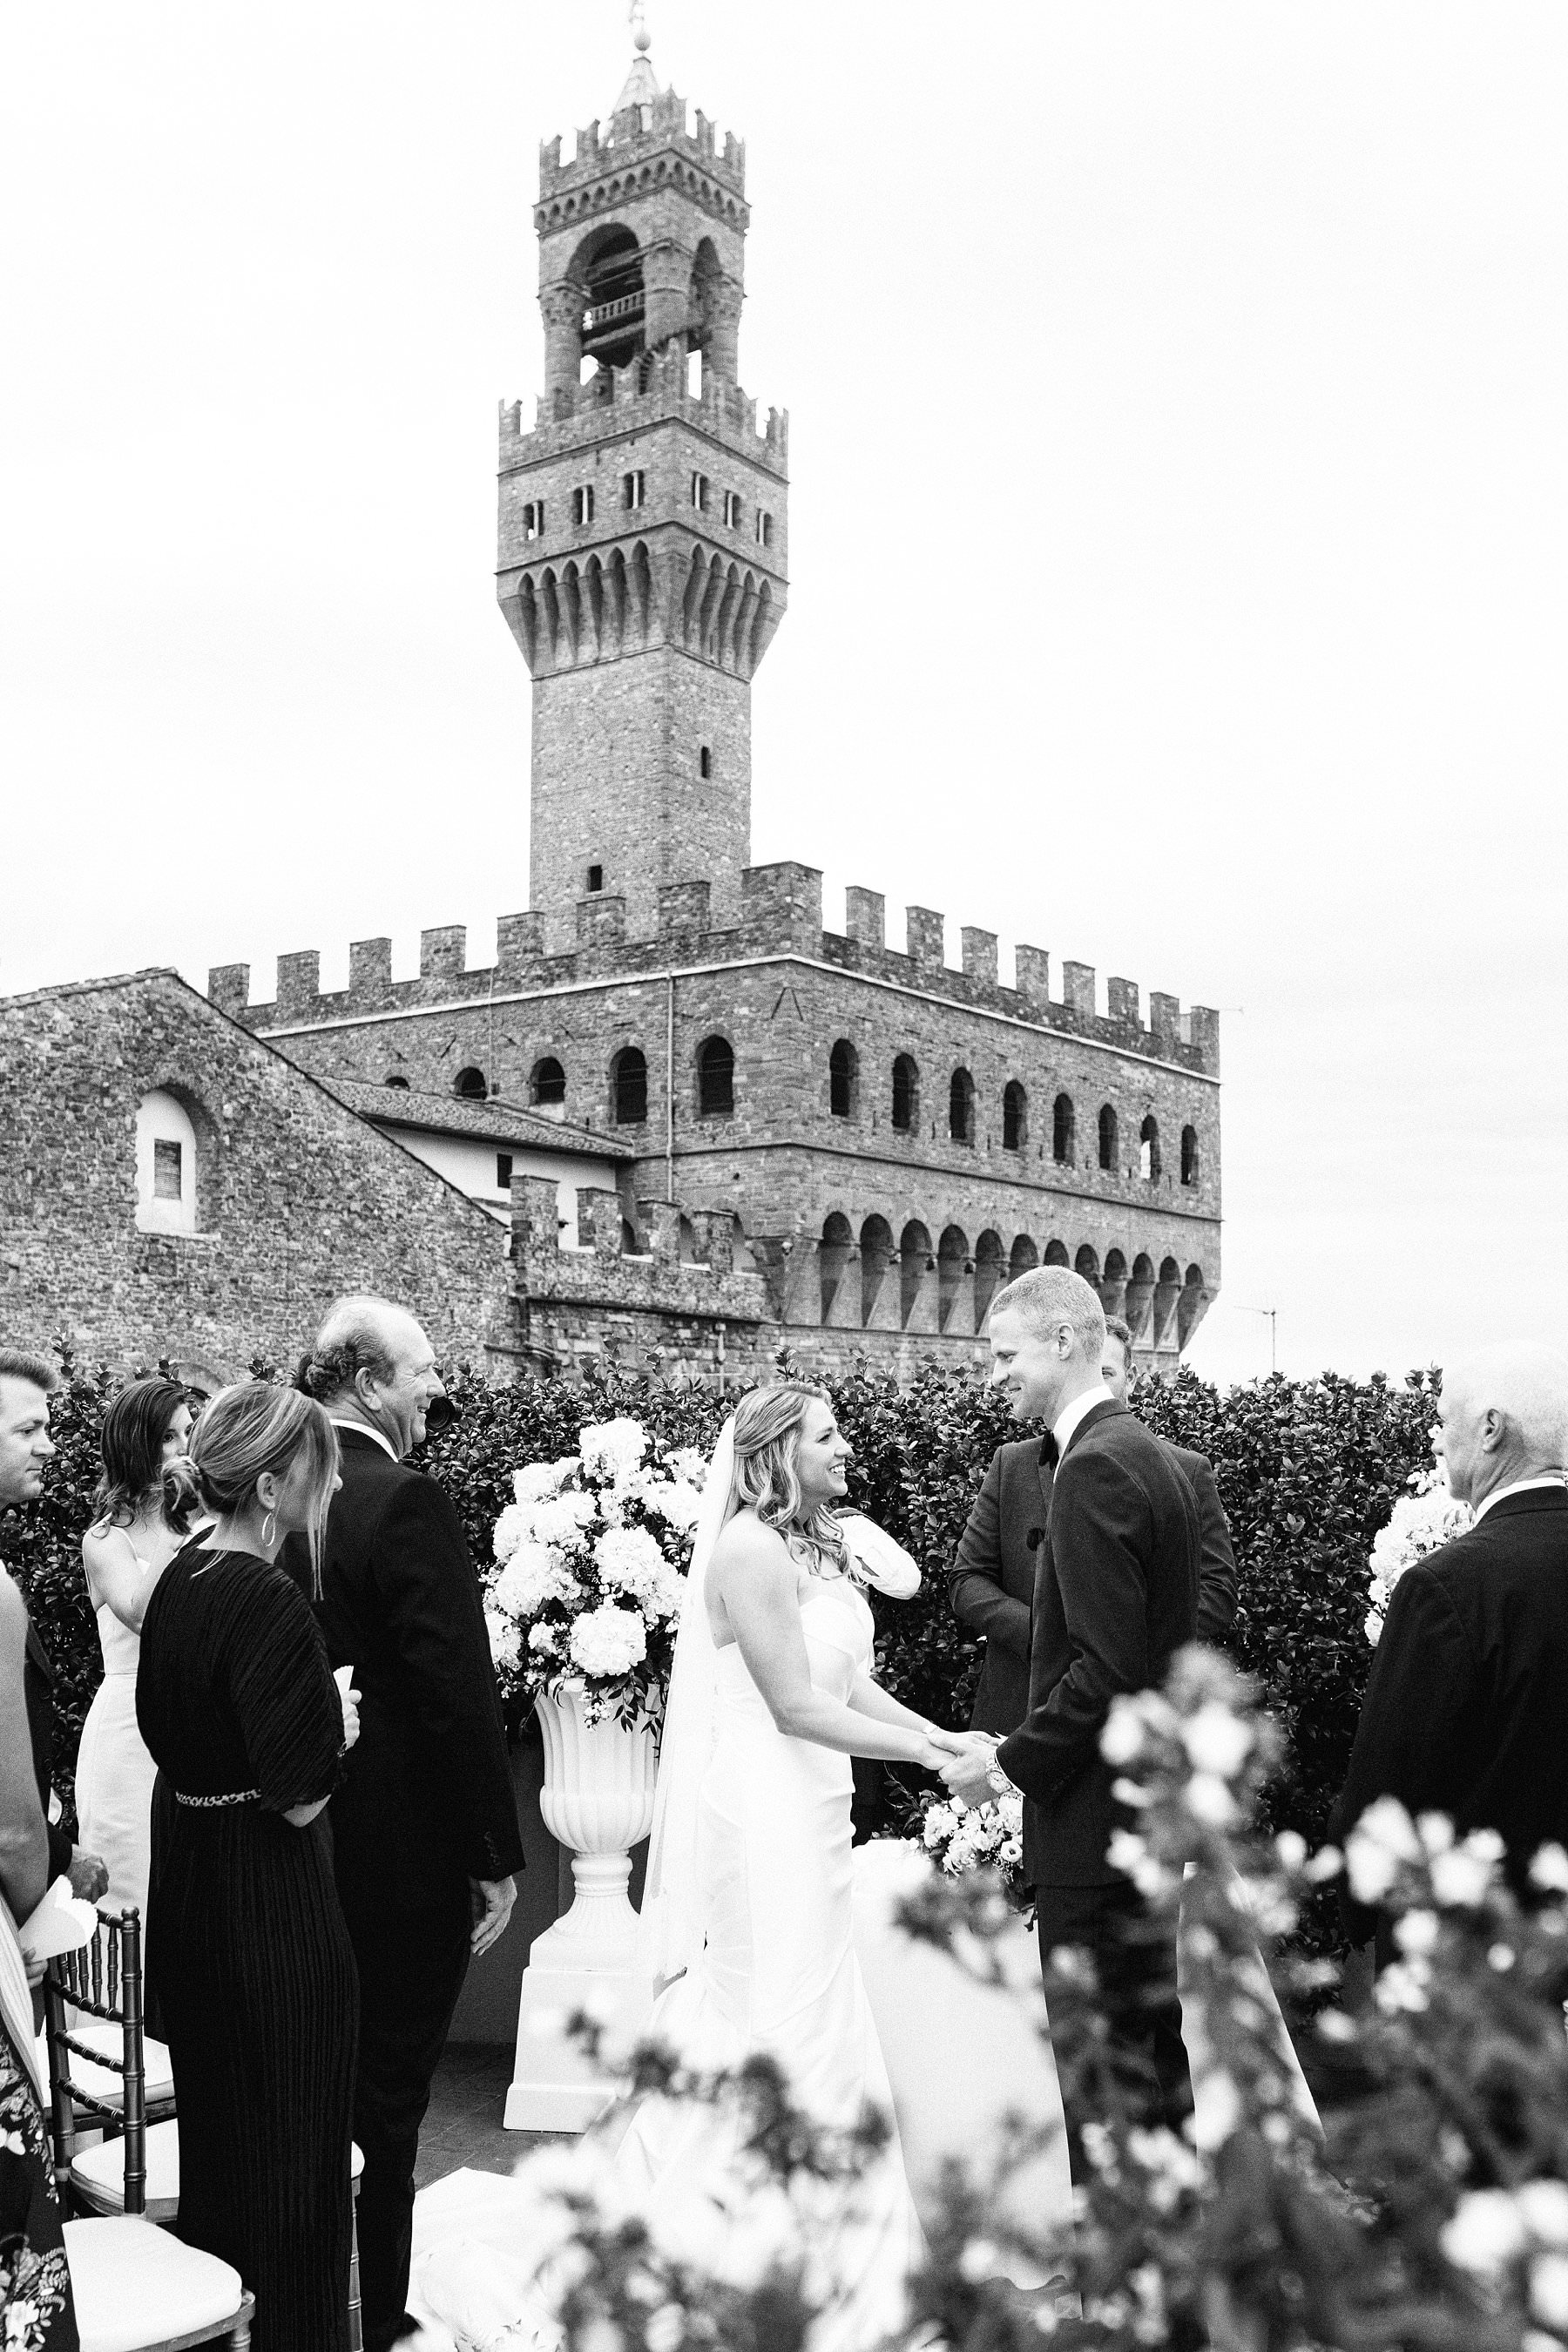 Intimate exquisite wedding in the heart of Florence, Italy. Lovely intimate exclusive wedding ceremony at the breathtaking top terrace of Palazzo Gondi which offers an incredible view of the Duomo and Palazzo Vecchio